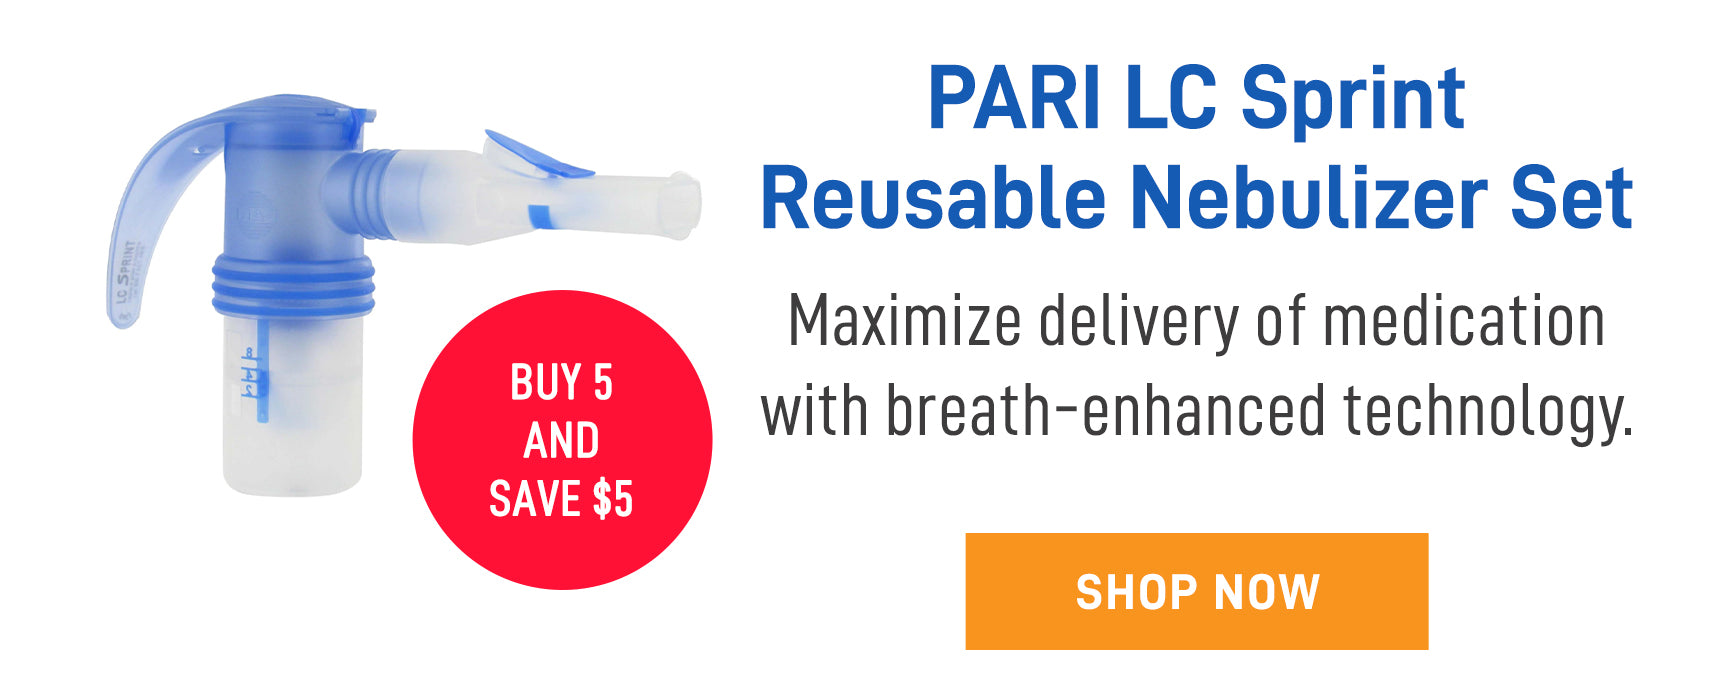 Pari Sprint nebulizer set to use with most nebulizer systems